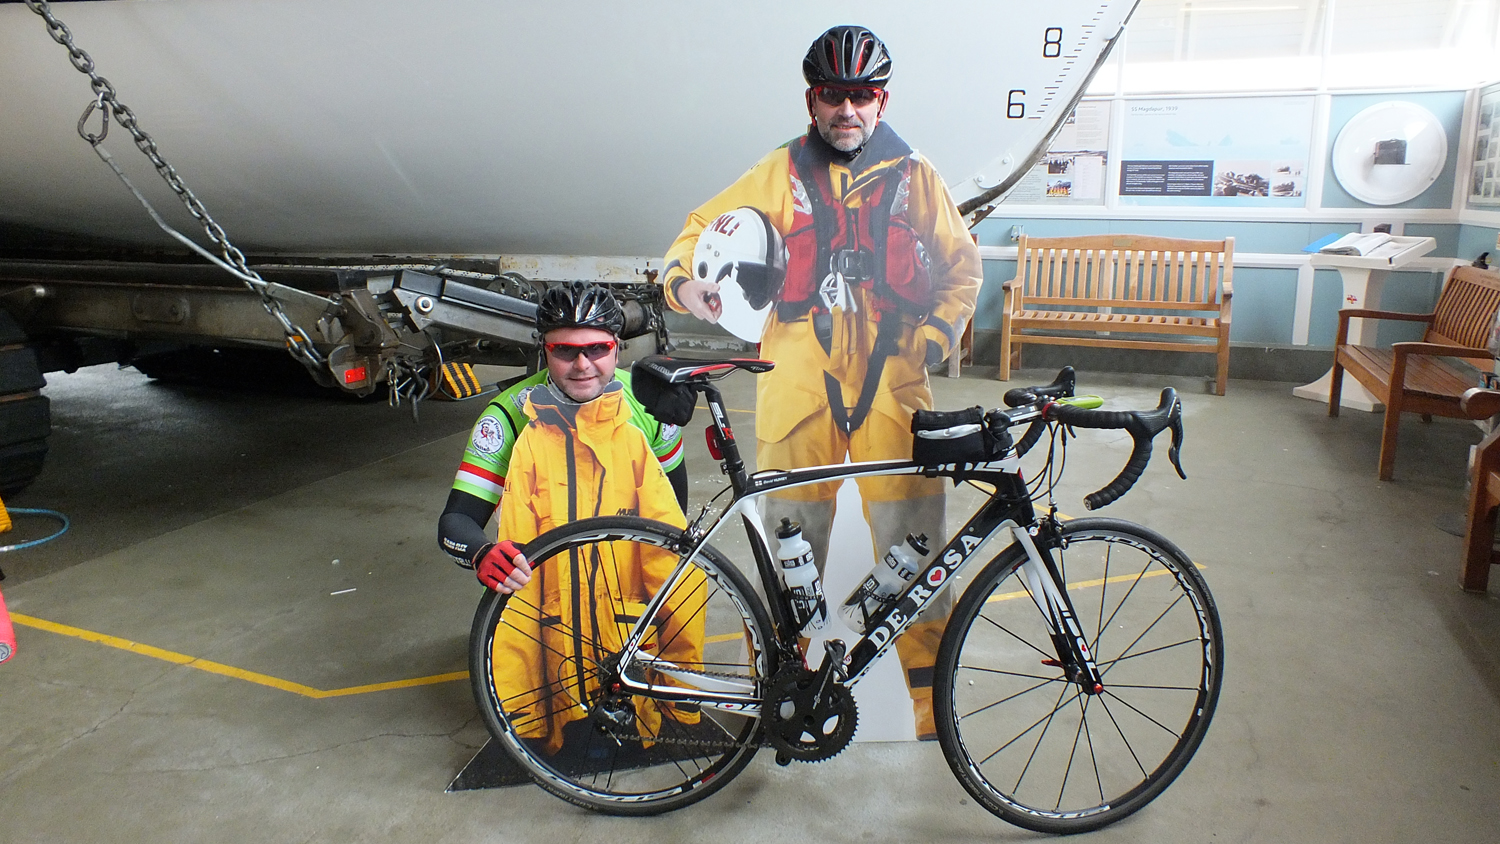 Two of the cyclists having fun at the start at Aldeburgh Lifeboat Station